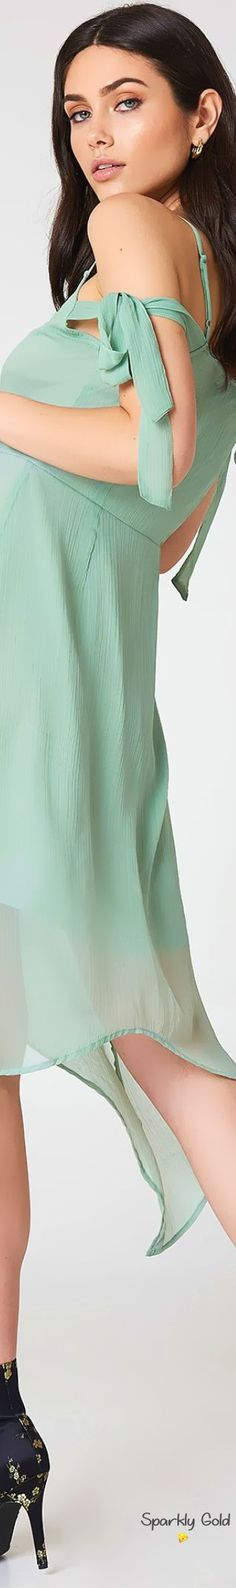 Mint Blue, Mint Color, Out Of Style, Her Style, Classy People, Fashion Lighting, Color Of Life, I Love Fashion, Pistachio